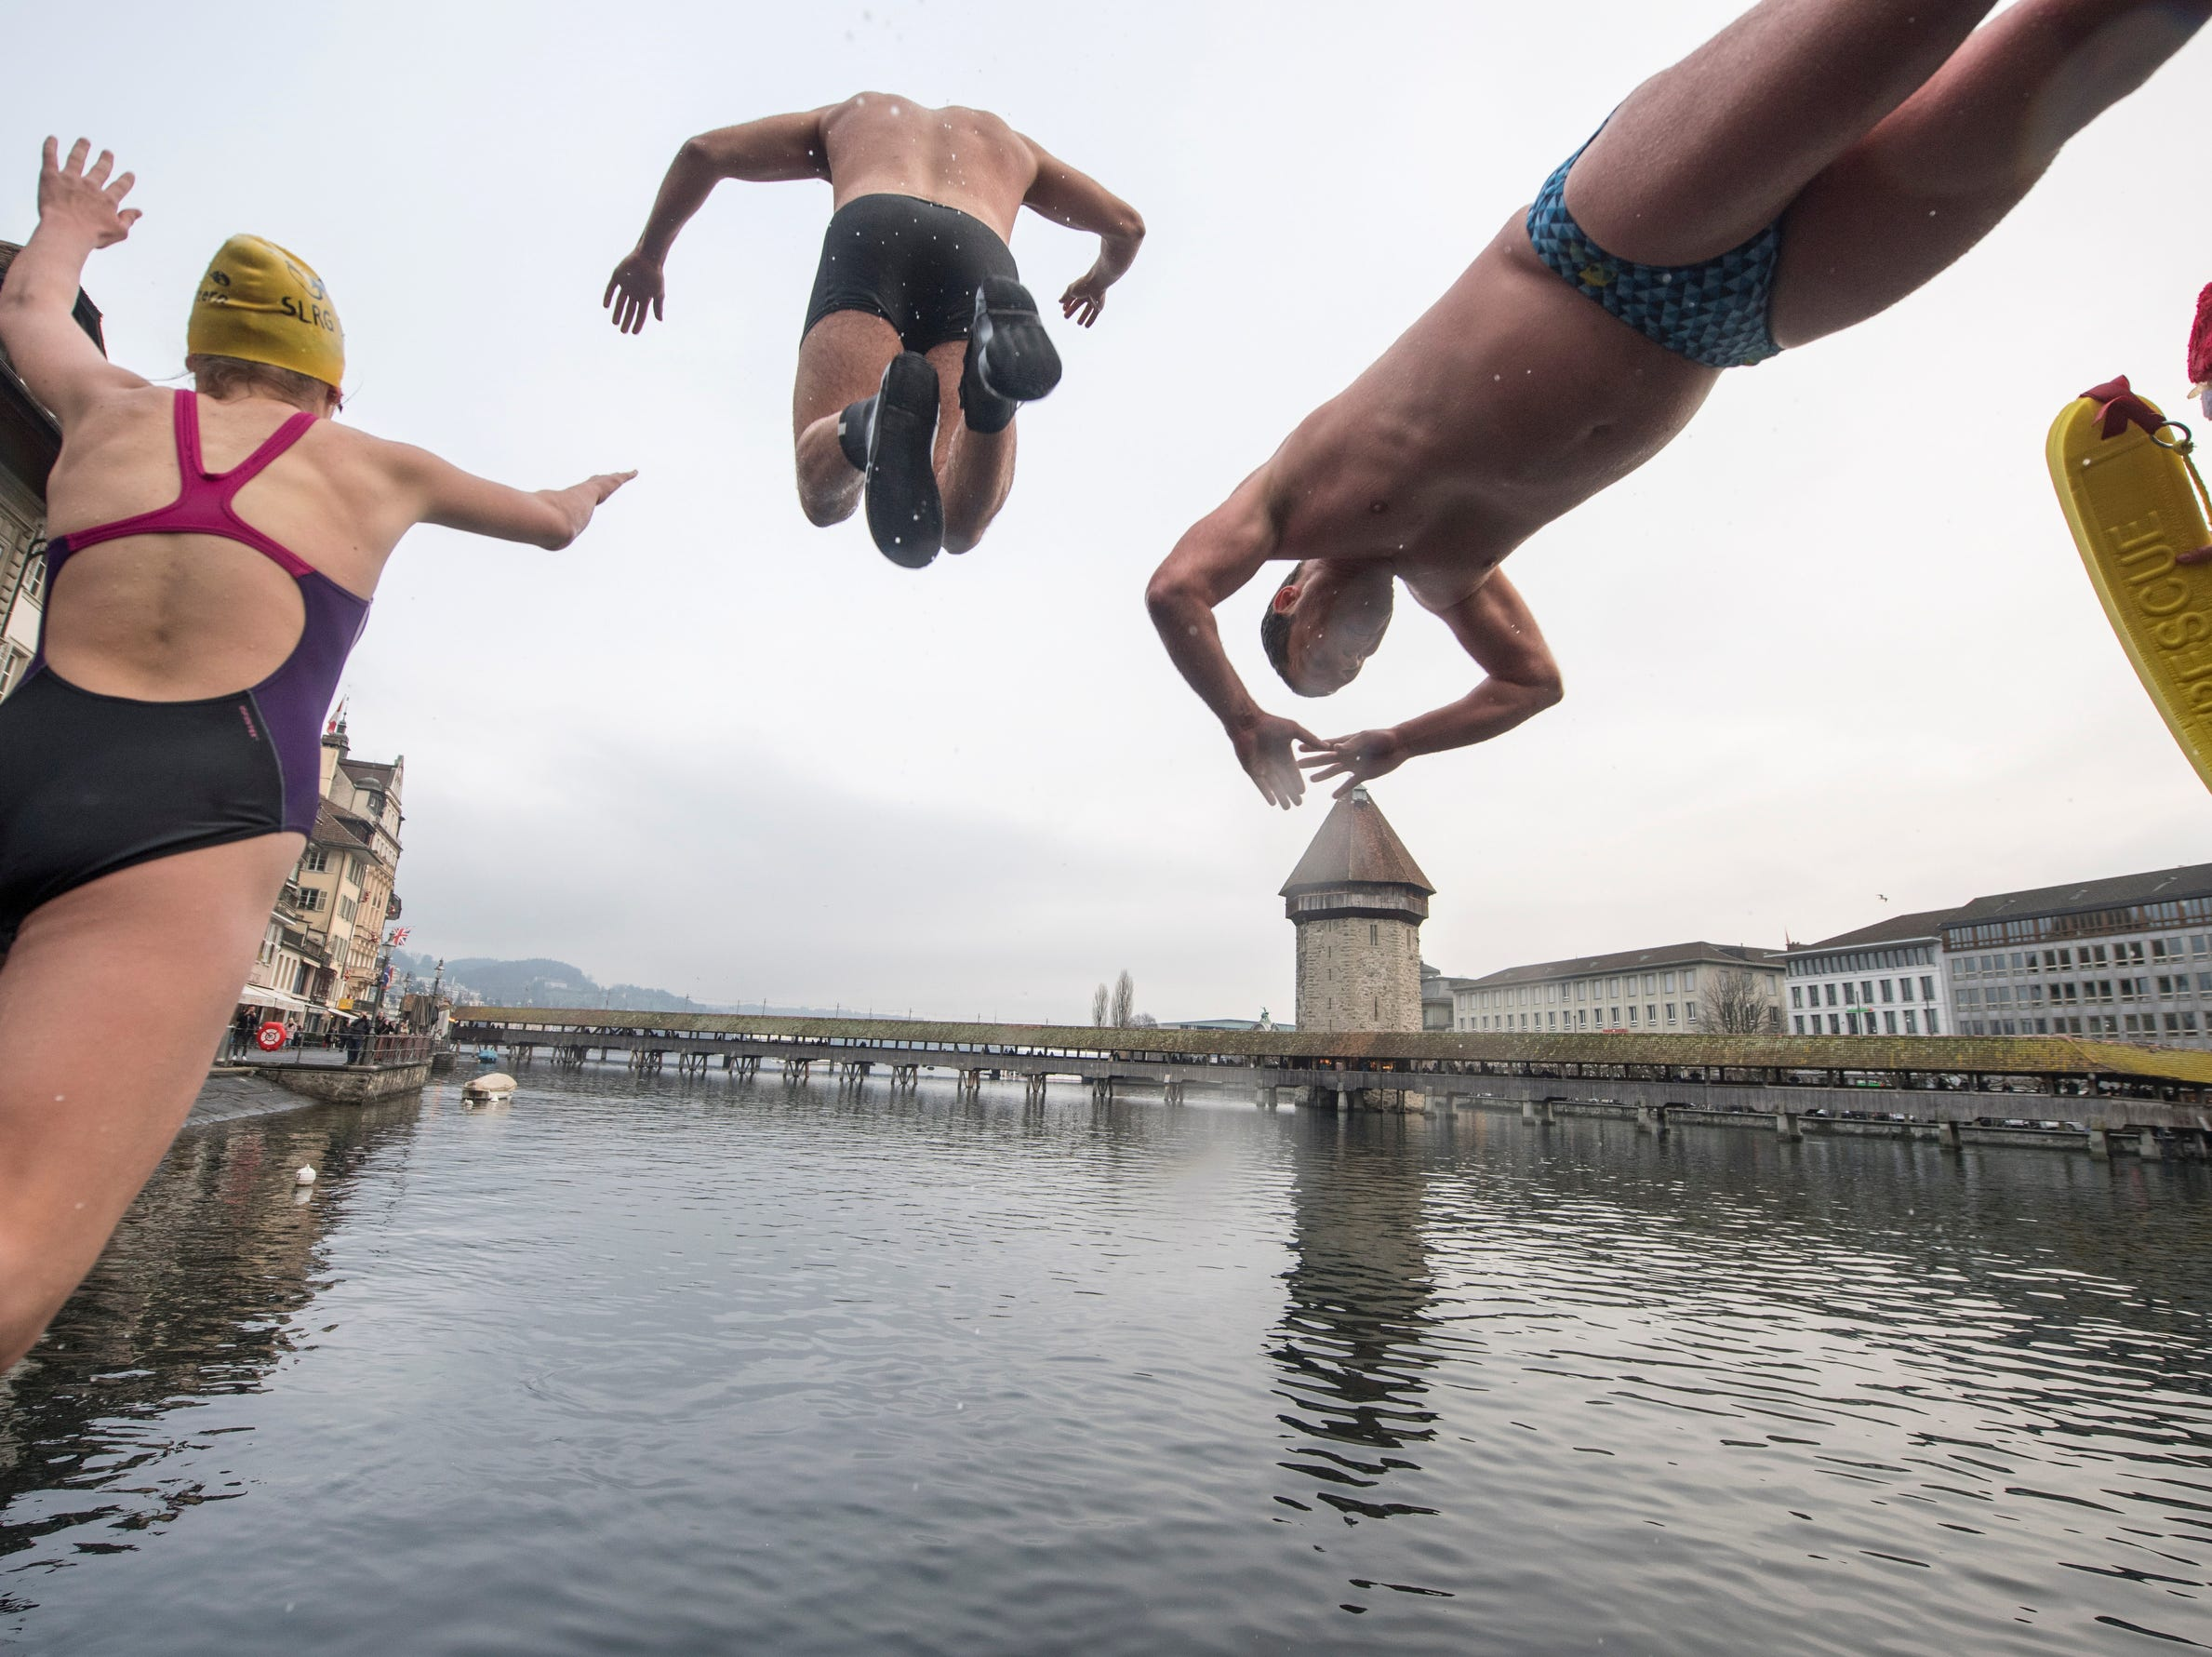 Approximately 40 lifeguards and swimmers of the Swiss Life Saving Society SLRG Lucerne Section celebrate New Year's Eve together with a jump into the Reuss river in the old town of Lucerne, Switzerland.